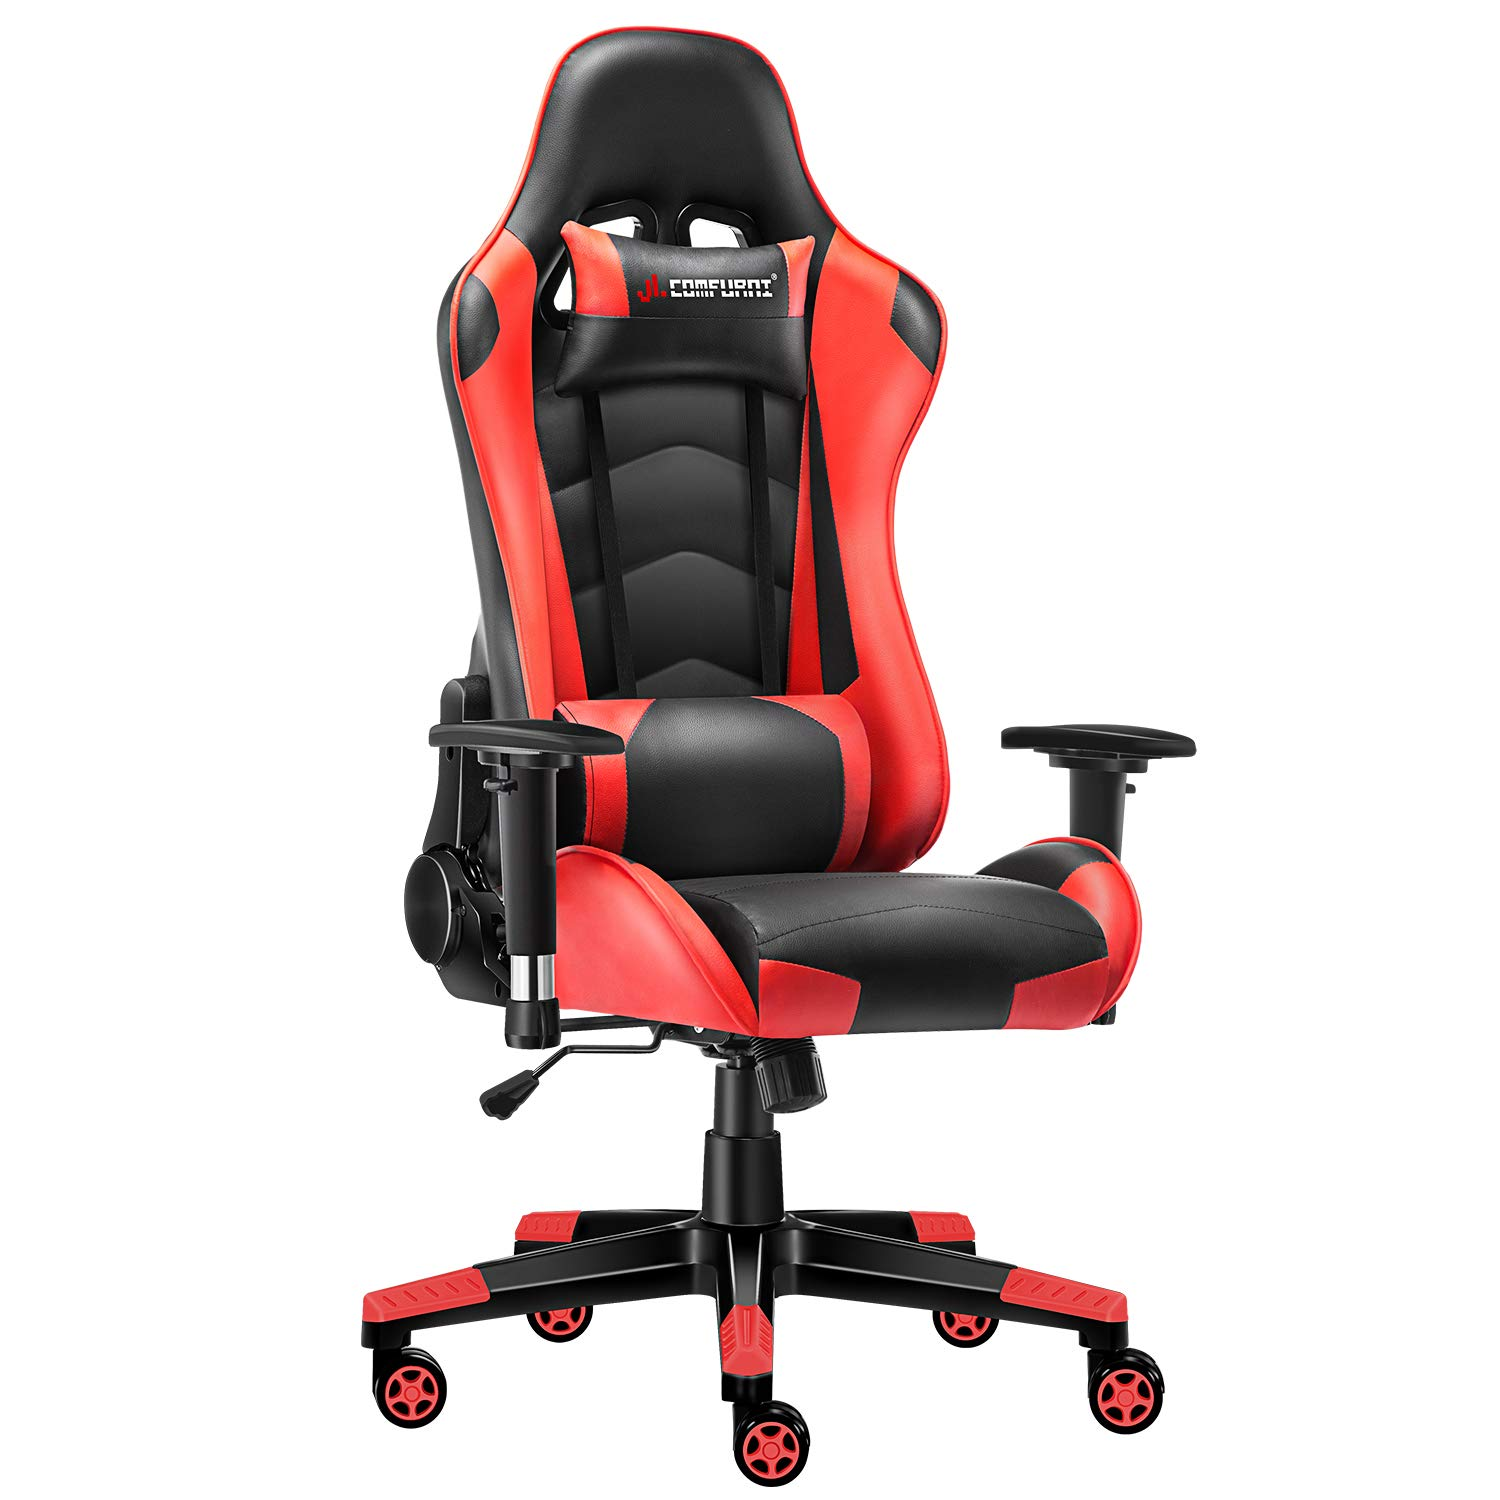 Fine Jl Comfurni Gaming Chair Computer Chairs Ergonomic Swivel Office Pc Desk Chair Heavy Duty Reclining High Back With Lumbar Cushion Blackred Squirreltailoven Fun Painted Chair Ideas Images Squirreltailovenorg